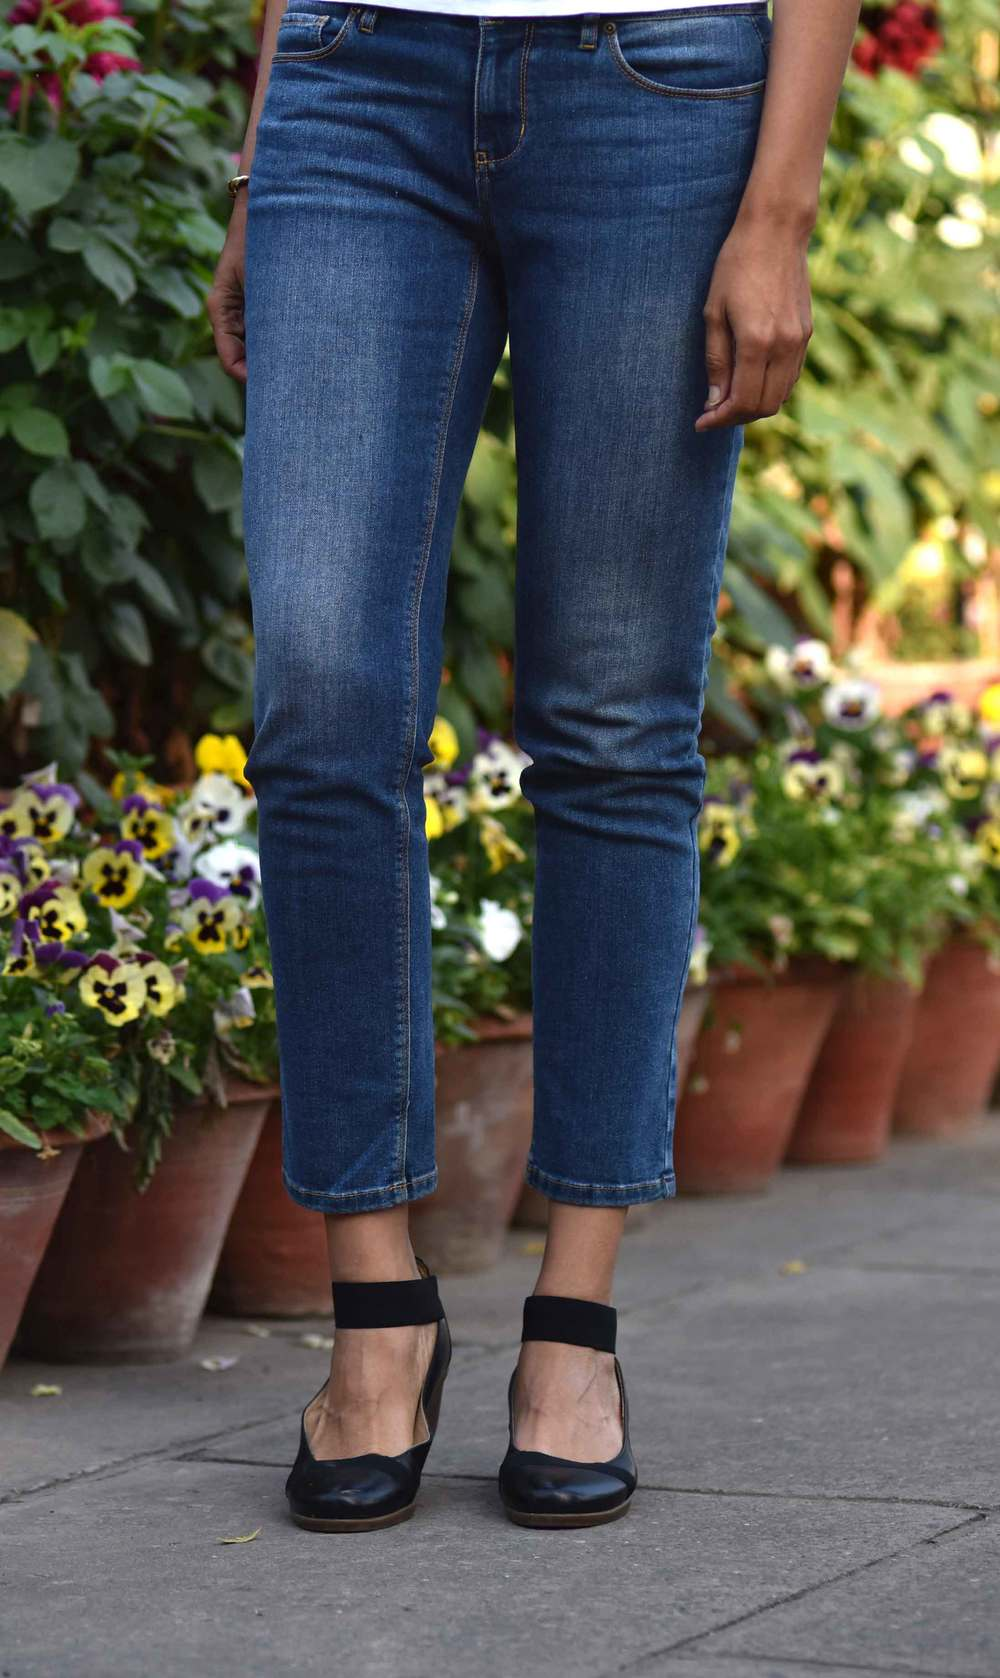 The JJill Authentic Fit Slim Ankle Jeans were a great buy! Image©gunjanvirk